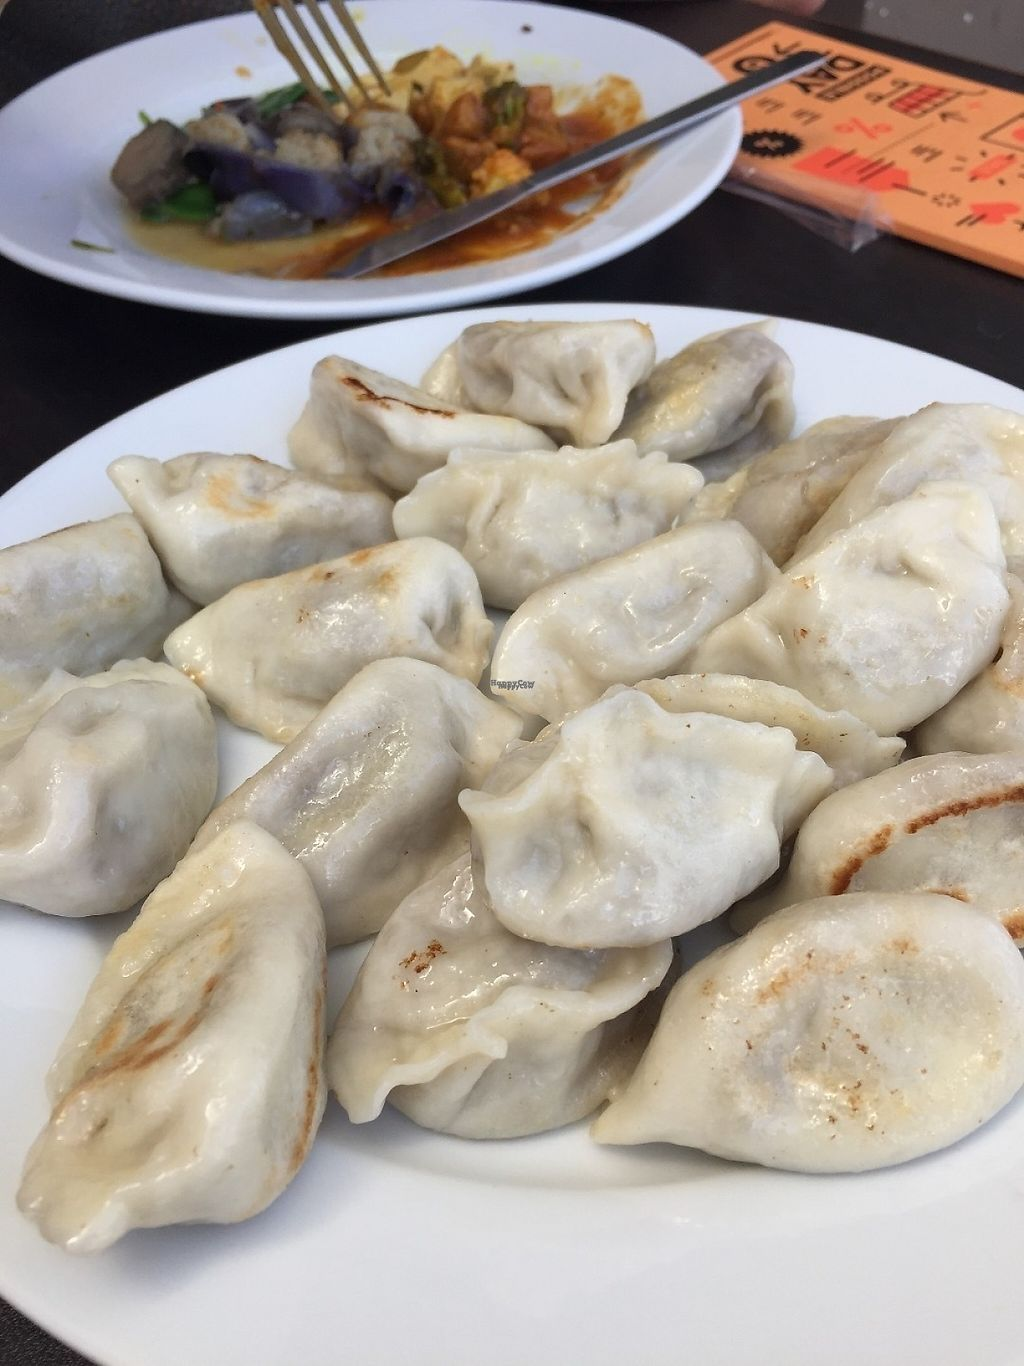 """Photo of Restaurante Delicia  by <a href=""""/members/profile/Longina"""">Longina</a> <br/>Potstickers <br/> April 6, 2017  - <a href='/contact/abuse/image/56689/245251'>Report</a>"""